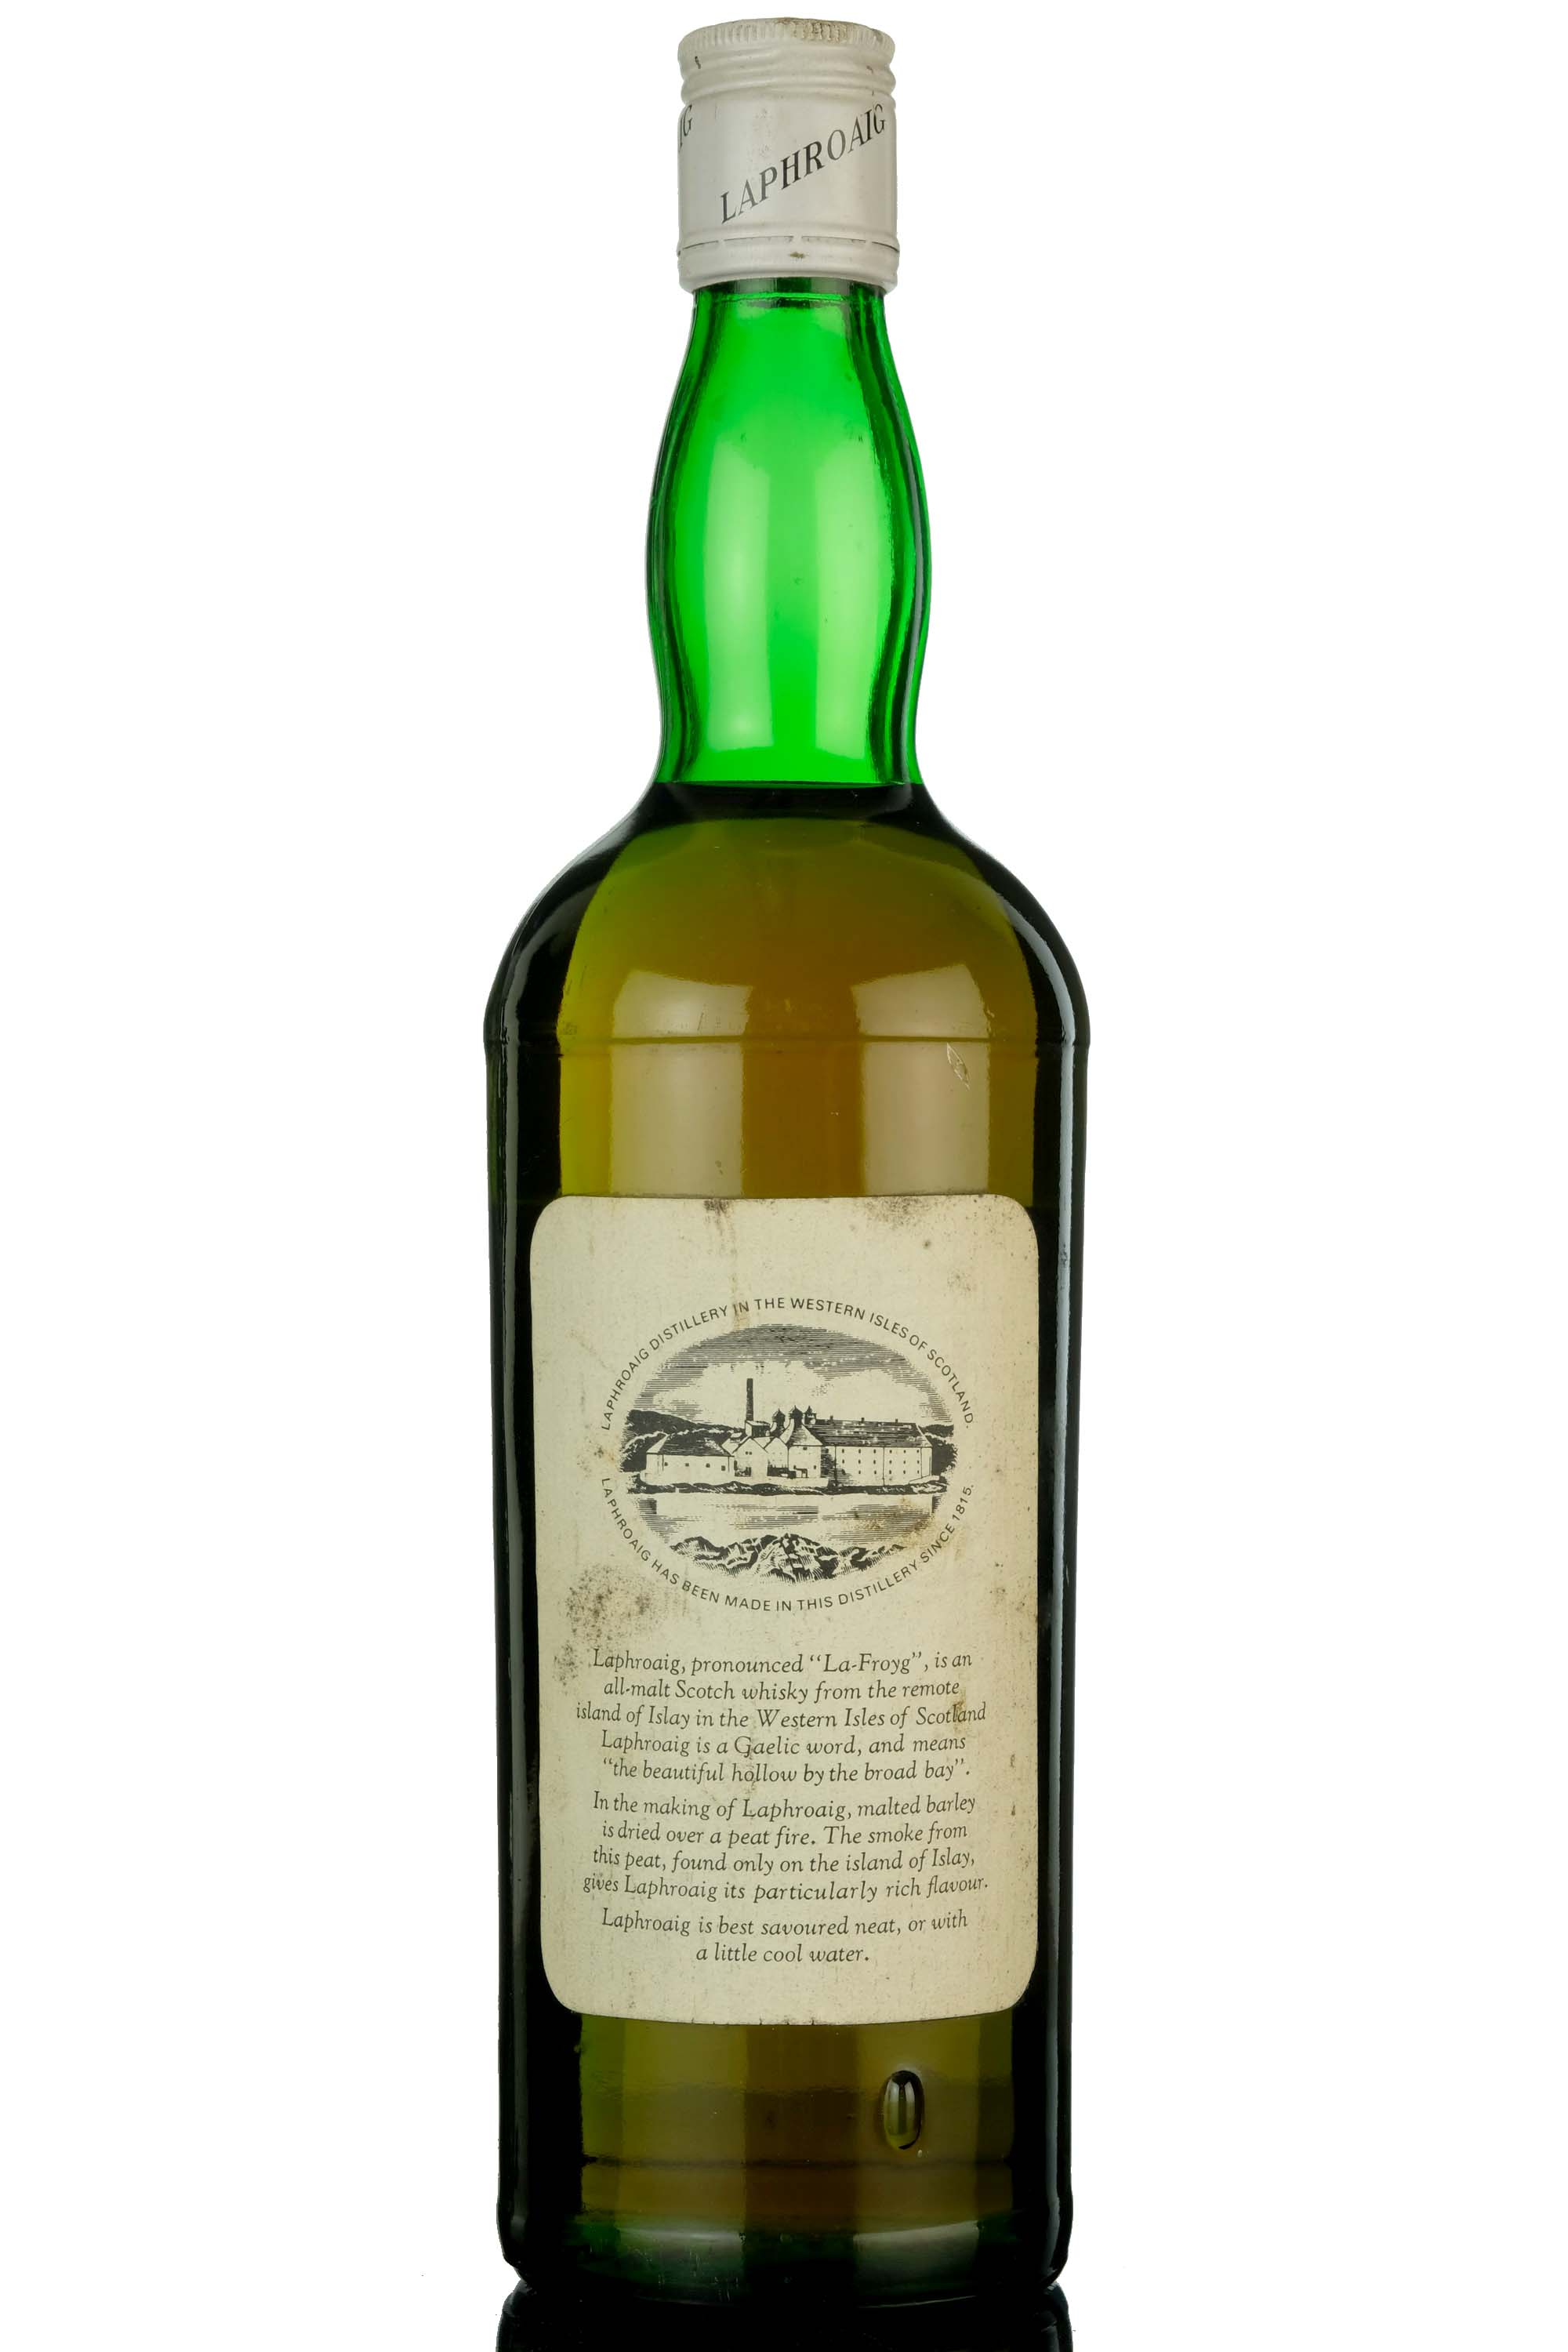 laphroaig 10 year old - late 1970s